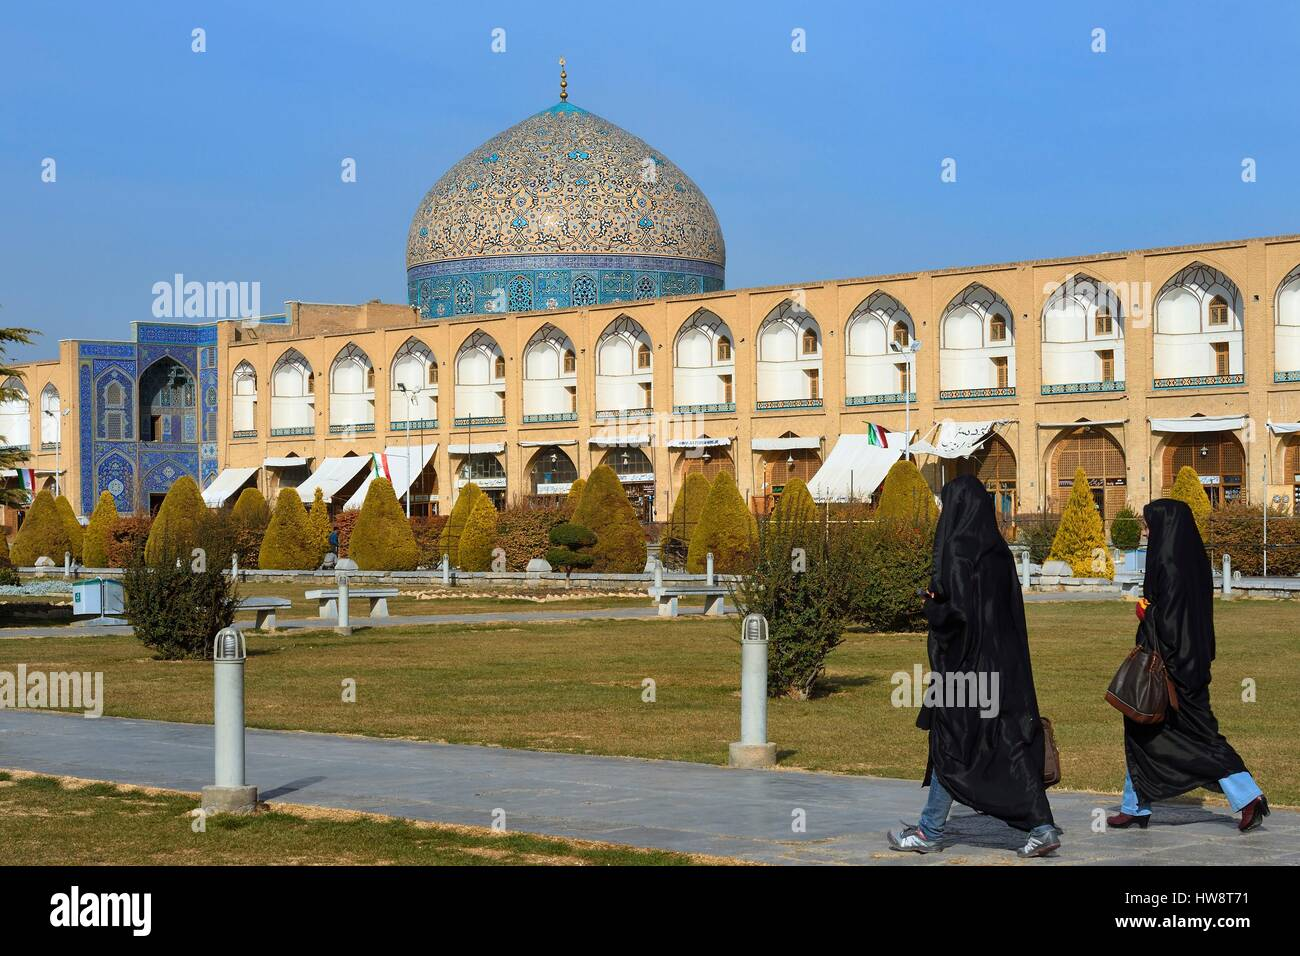 Iran, Isfahan Province, Isfahan, naghsh-i jahan square also known as Imam Khomeiny square, listed as World Heritage - Stock Image